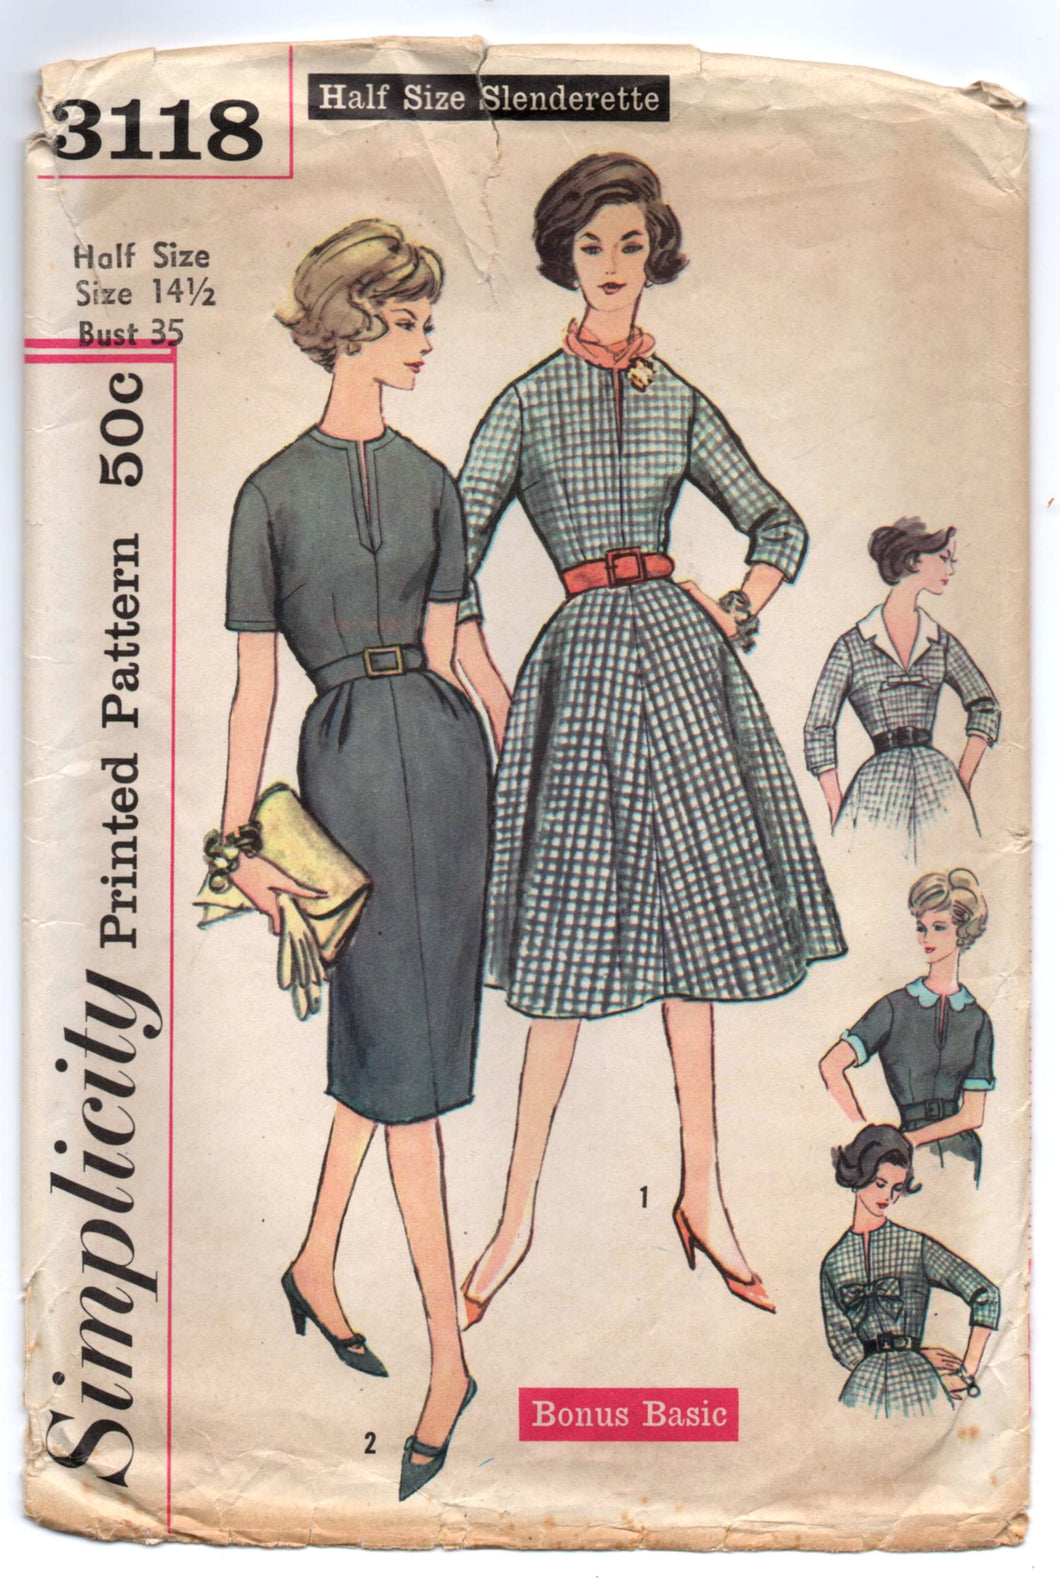 1950's Simplicity One-Piece Rockabilly or Wiggle Dress with detachable collar and Bow trim - Bust 35